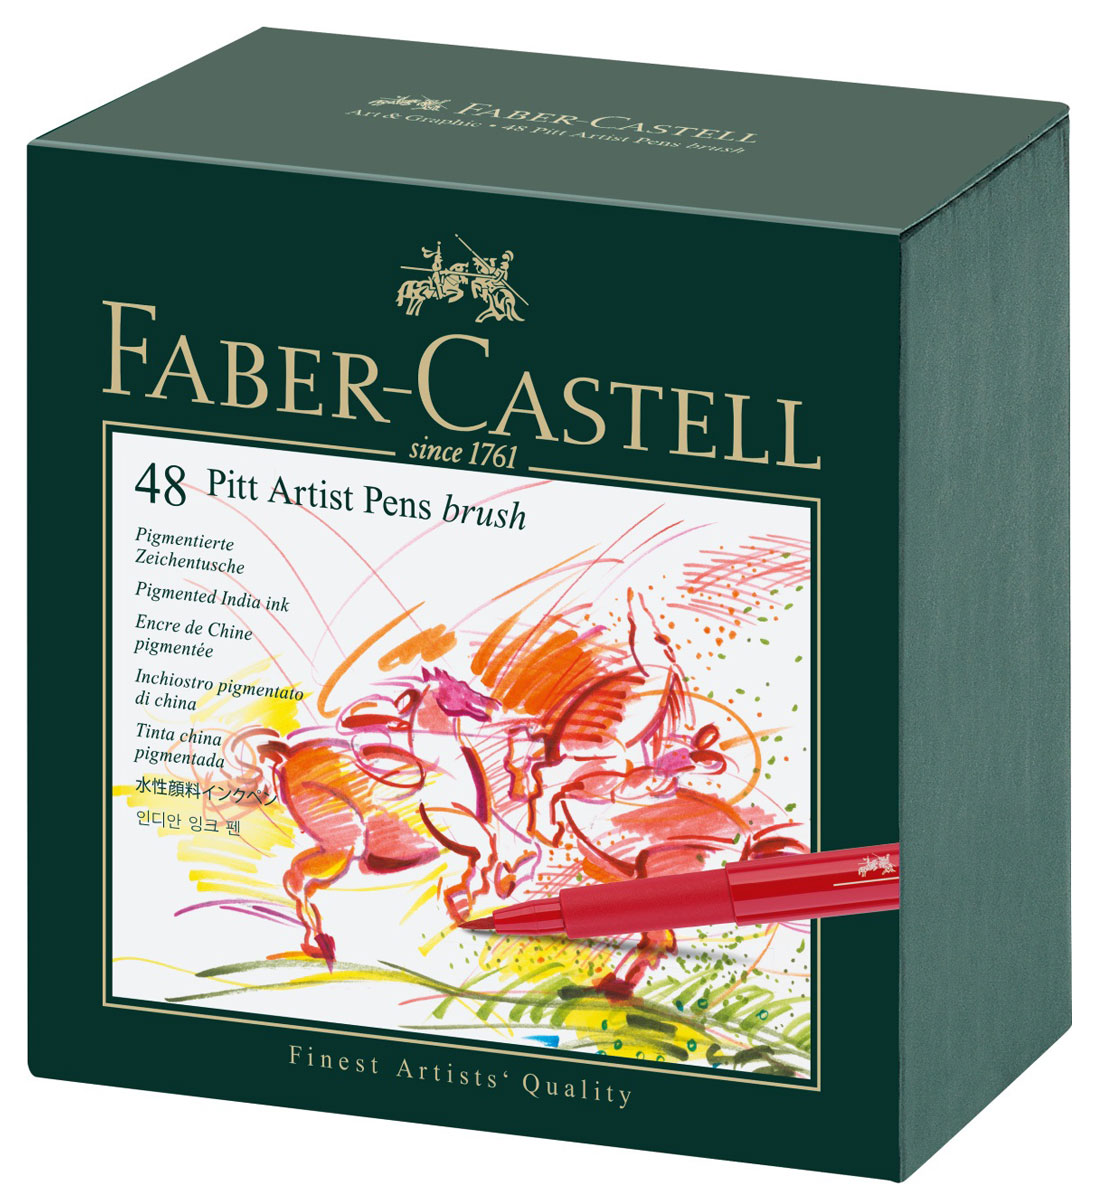 Faber-Castell Ручка капиллярная Pitt Artist Pen 48 шт faber castell капиллярные ручки pitt artist pen soft brush 8 шт